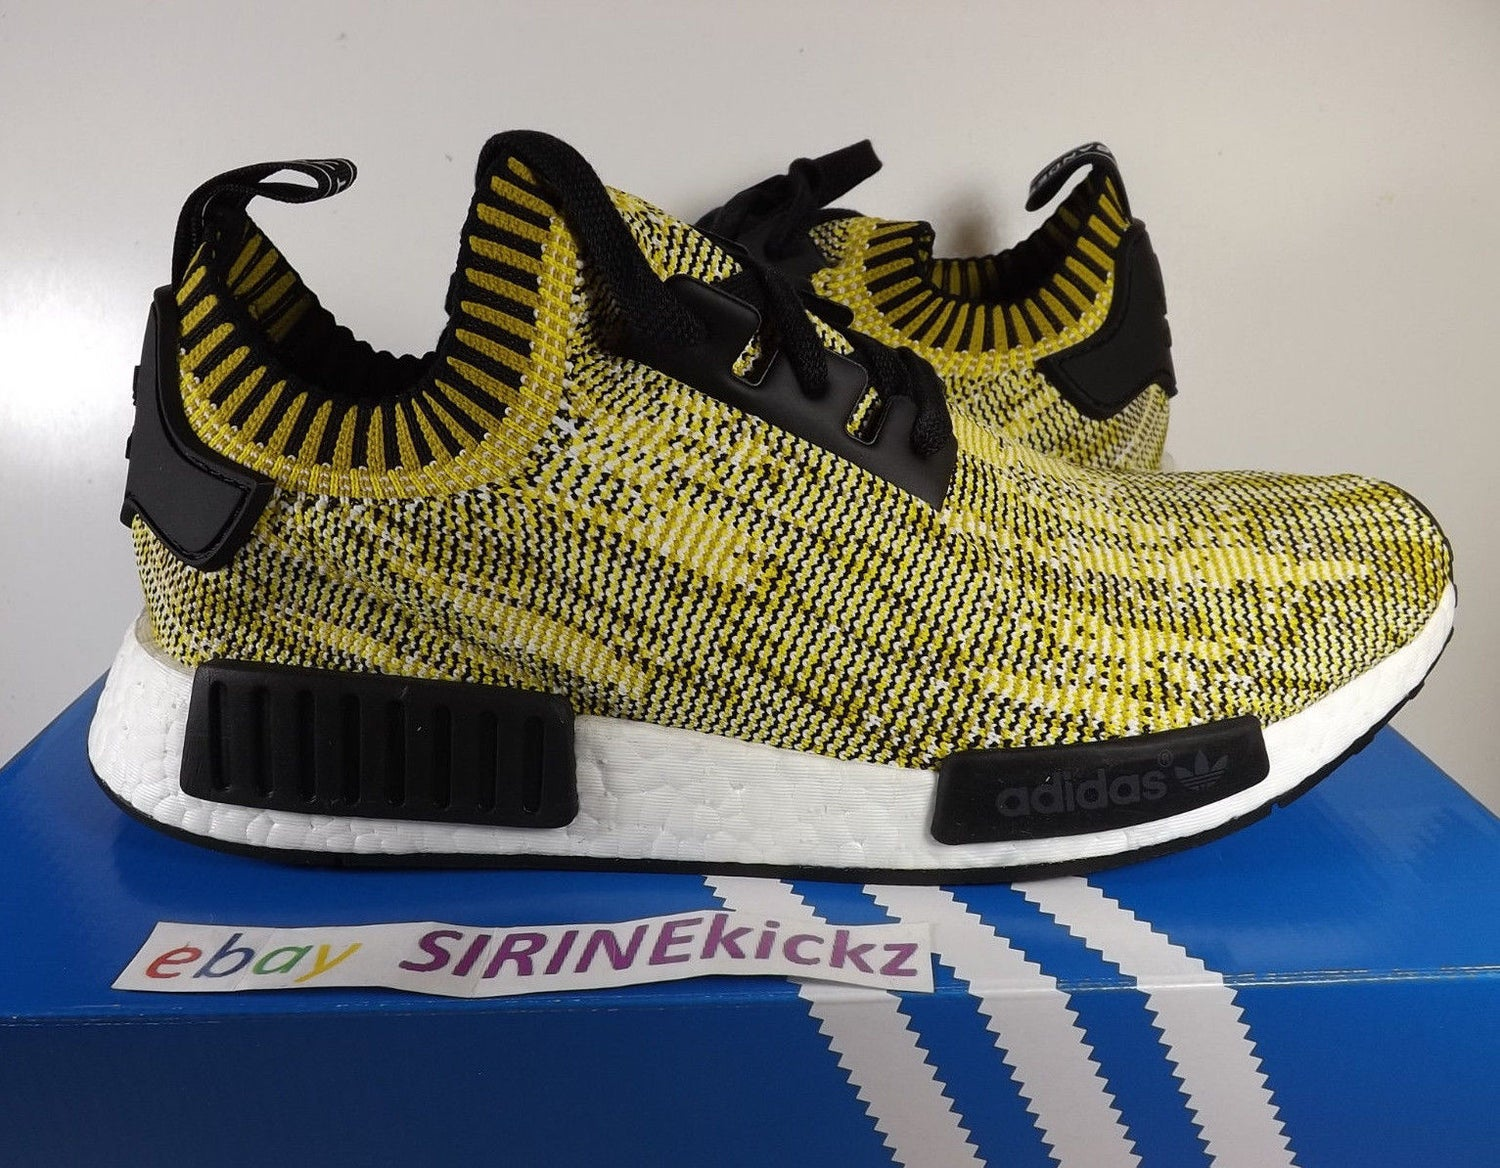 Image of Adidas NMD Runner PK - S42131 - Yellow Gold Black